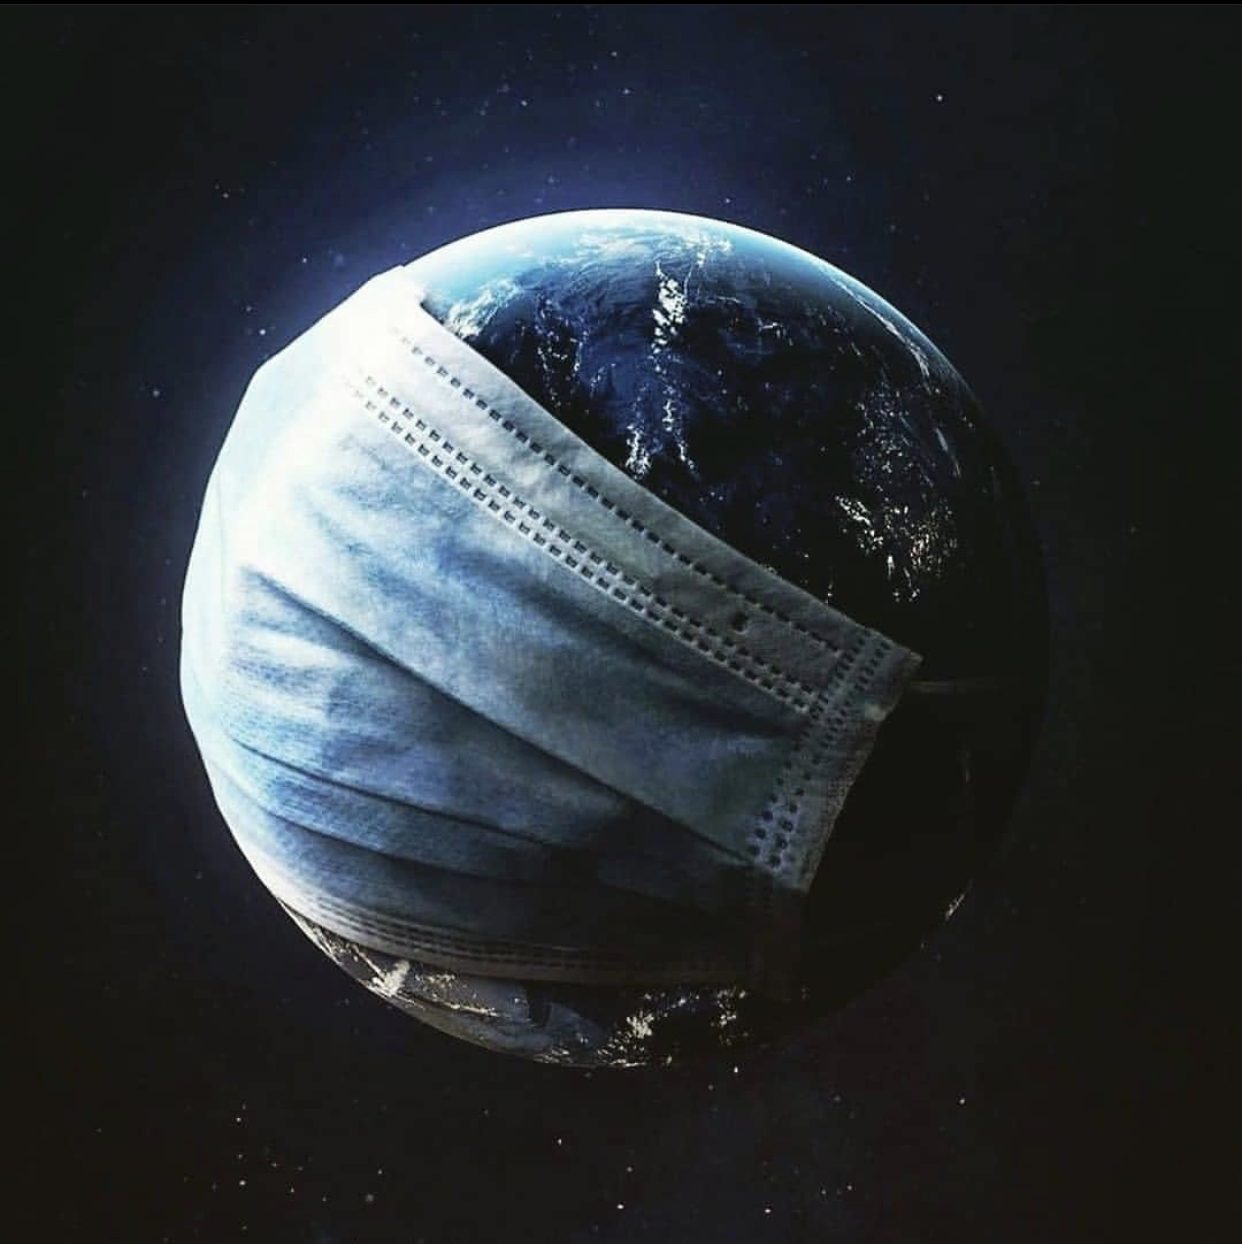 Earth under a pandemic, wearing a mask.